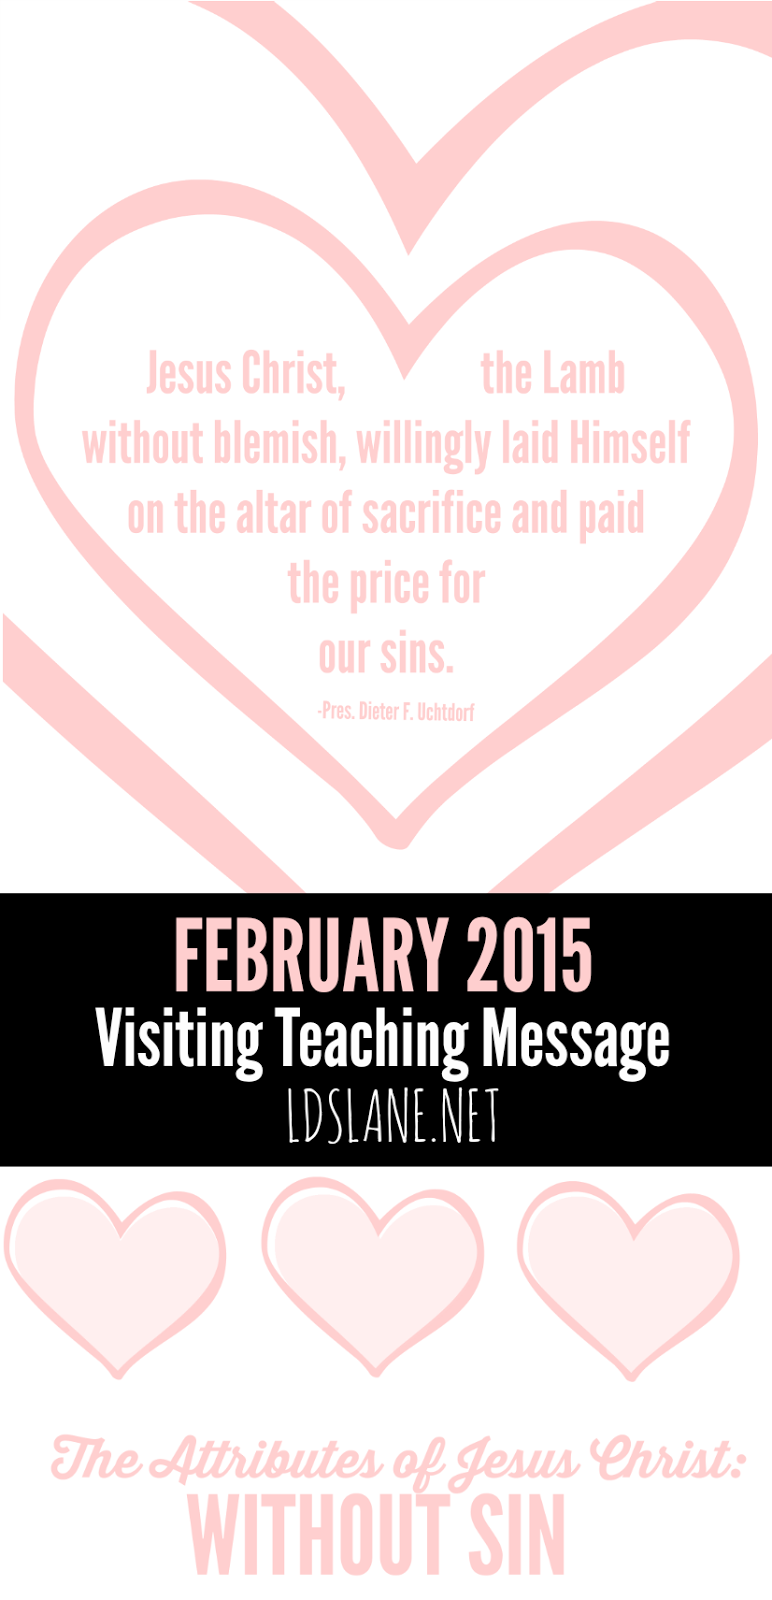 February 2015 Visiting Teaching Printables by ldslane.net